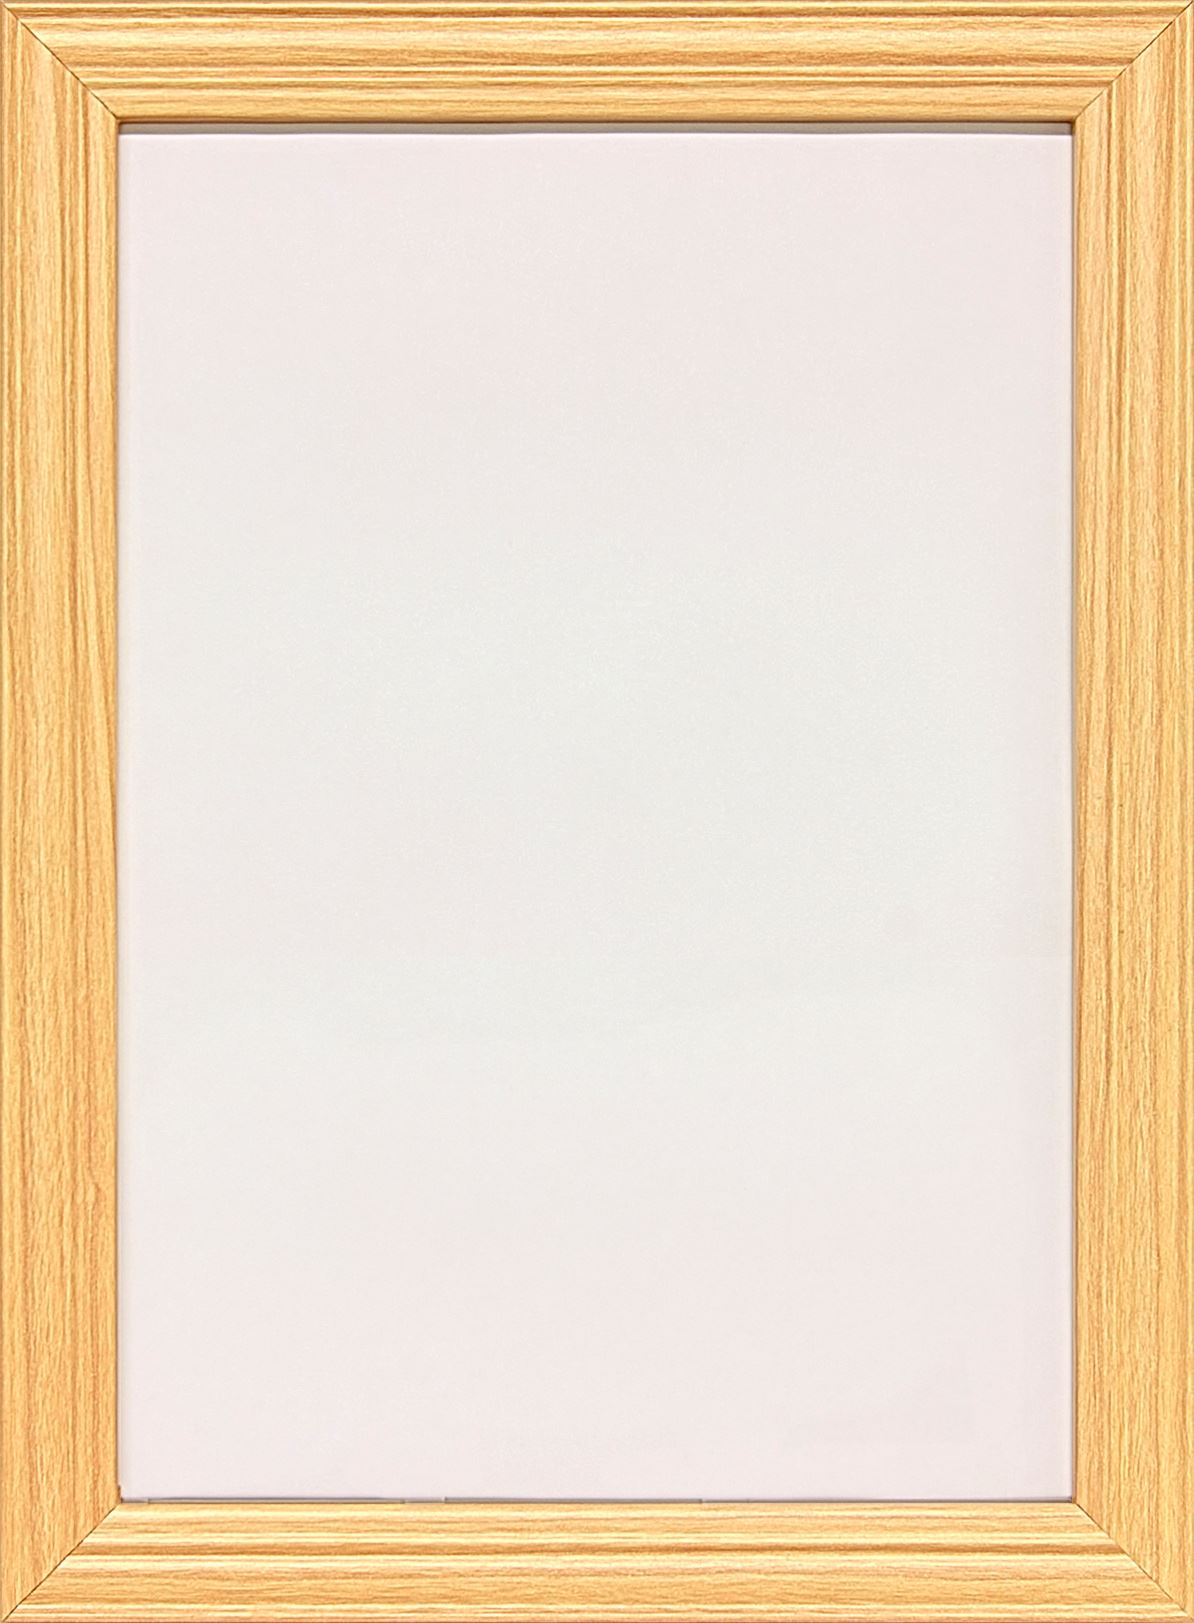 A1 A2 A3 A4 A5 Picture Frame Photo Frame Poster Frames GOLD BLACK ...